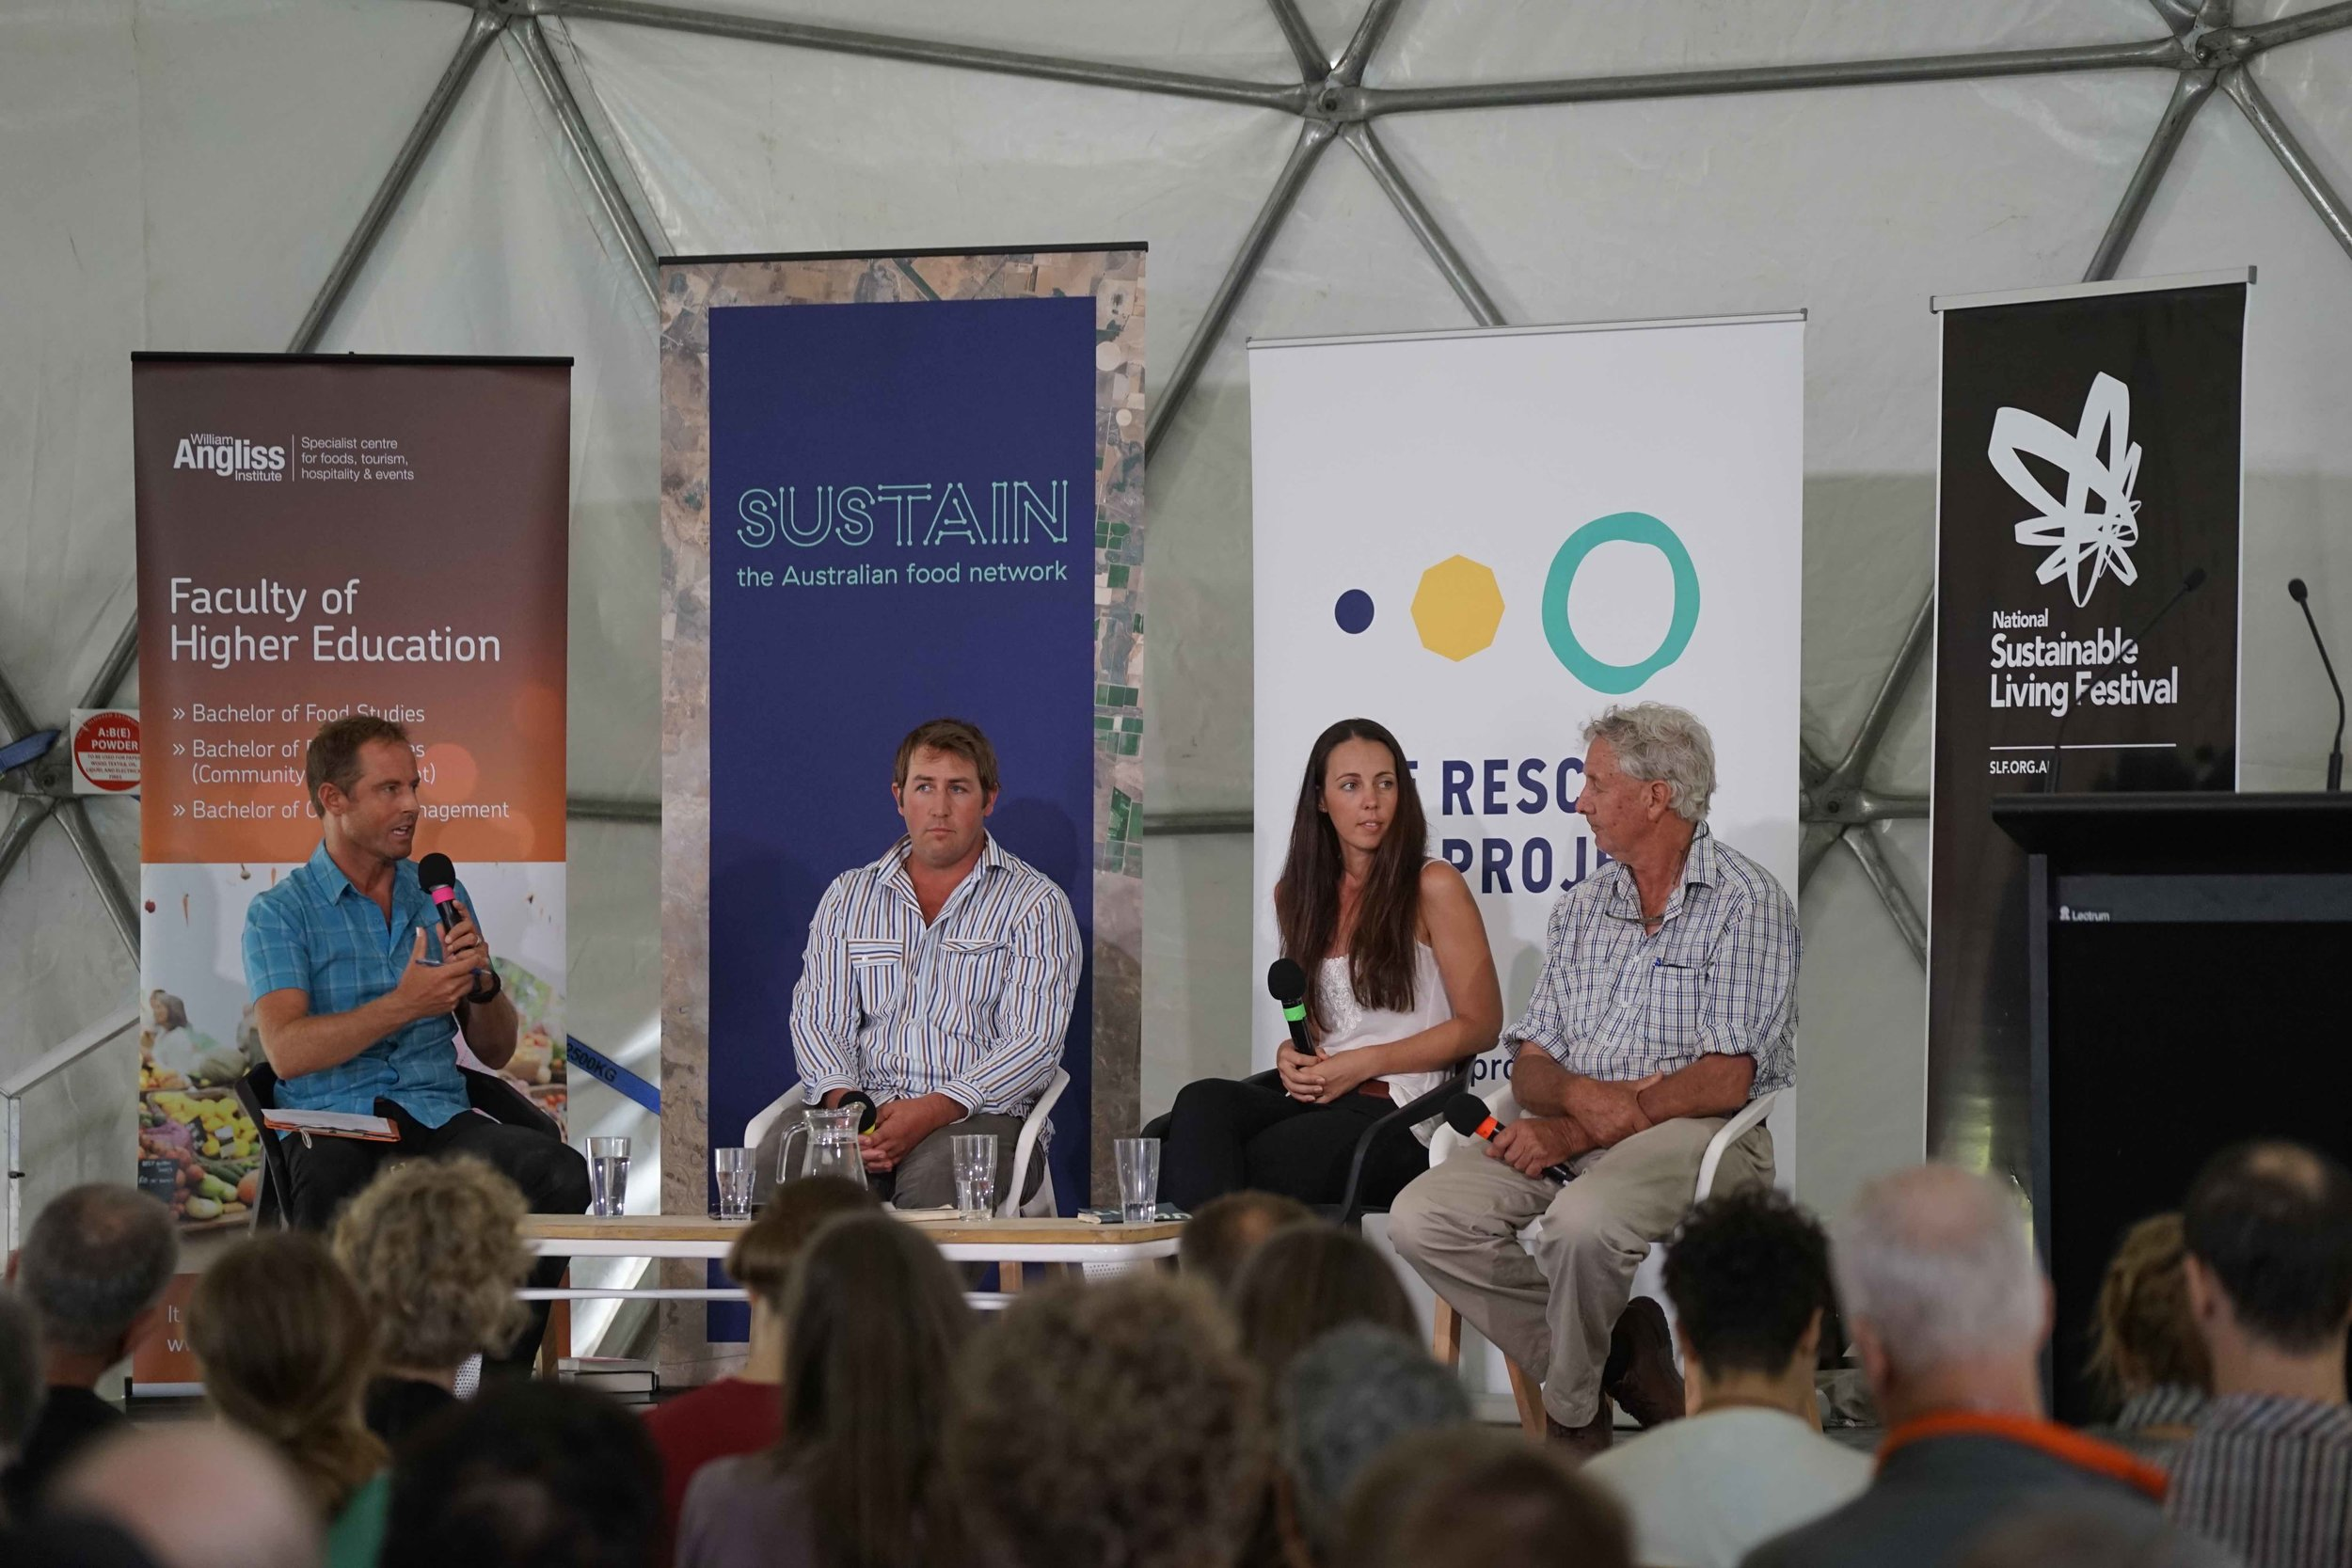 Anthony James, David Pollock, Frances Jones & Charles Massey in conversation at the National Sustainable Living Festival (SLF). Pic: SLF.